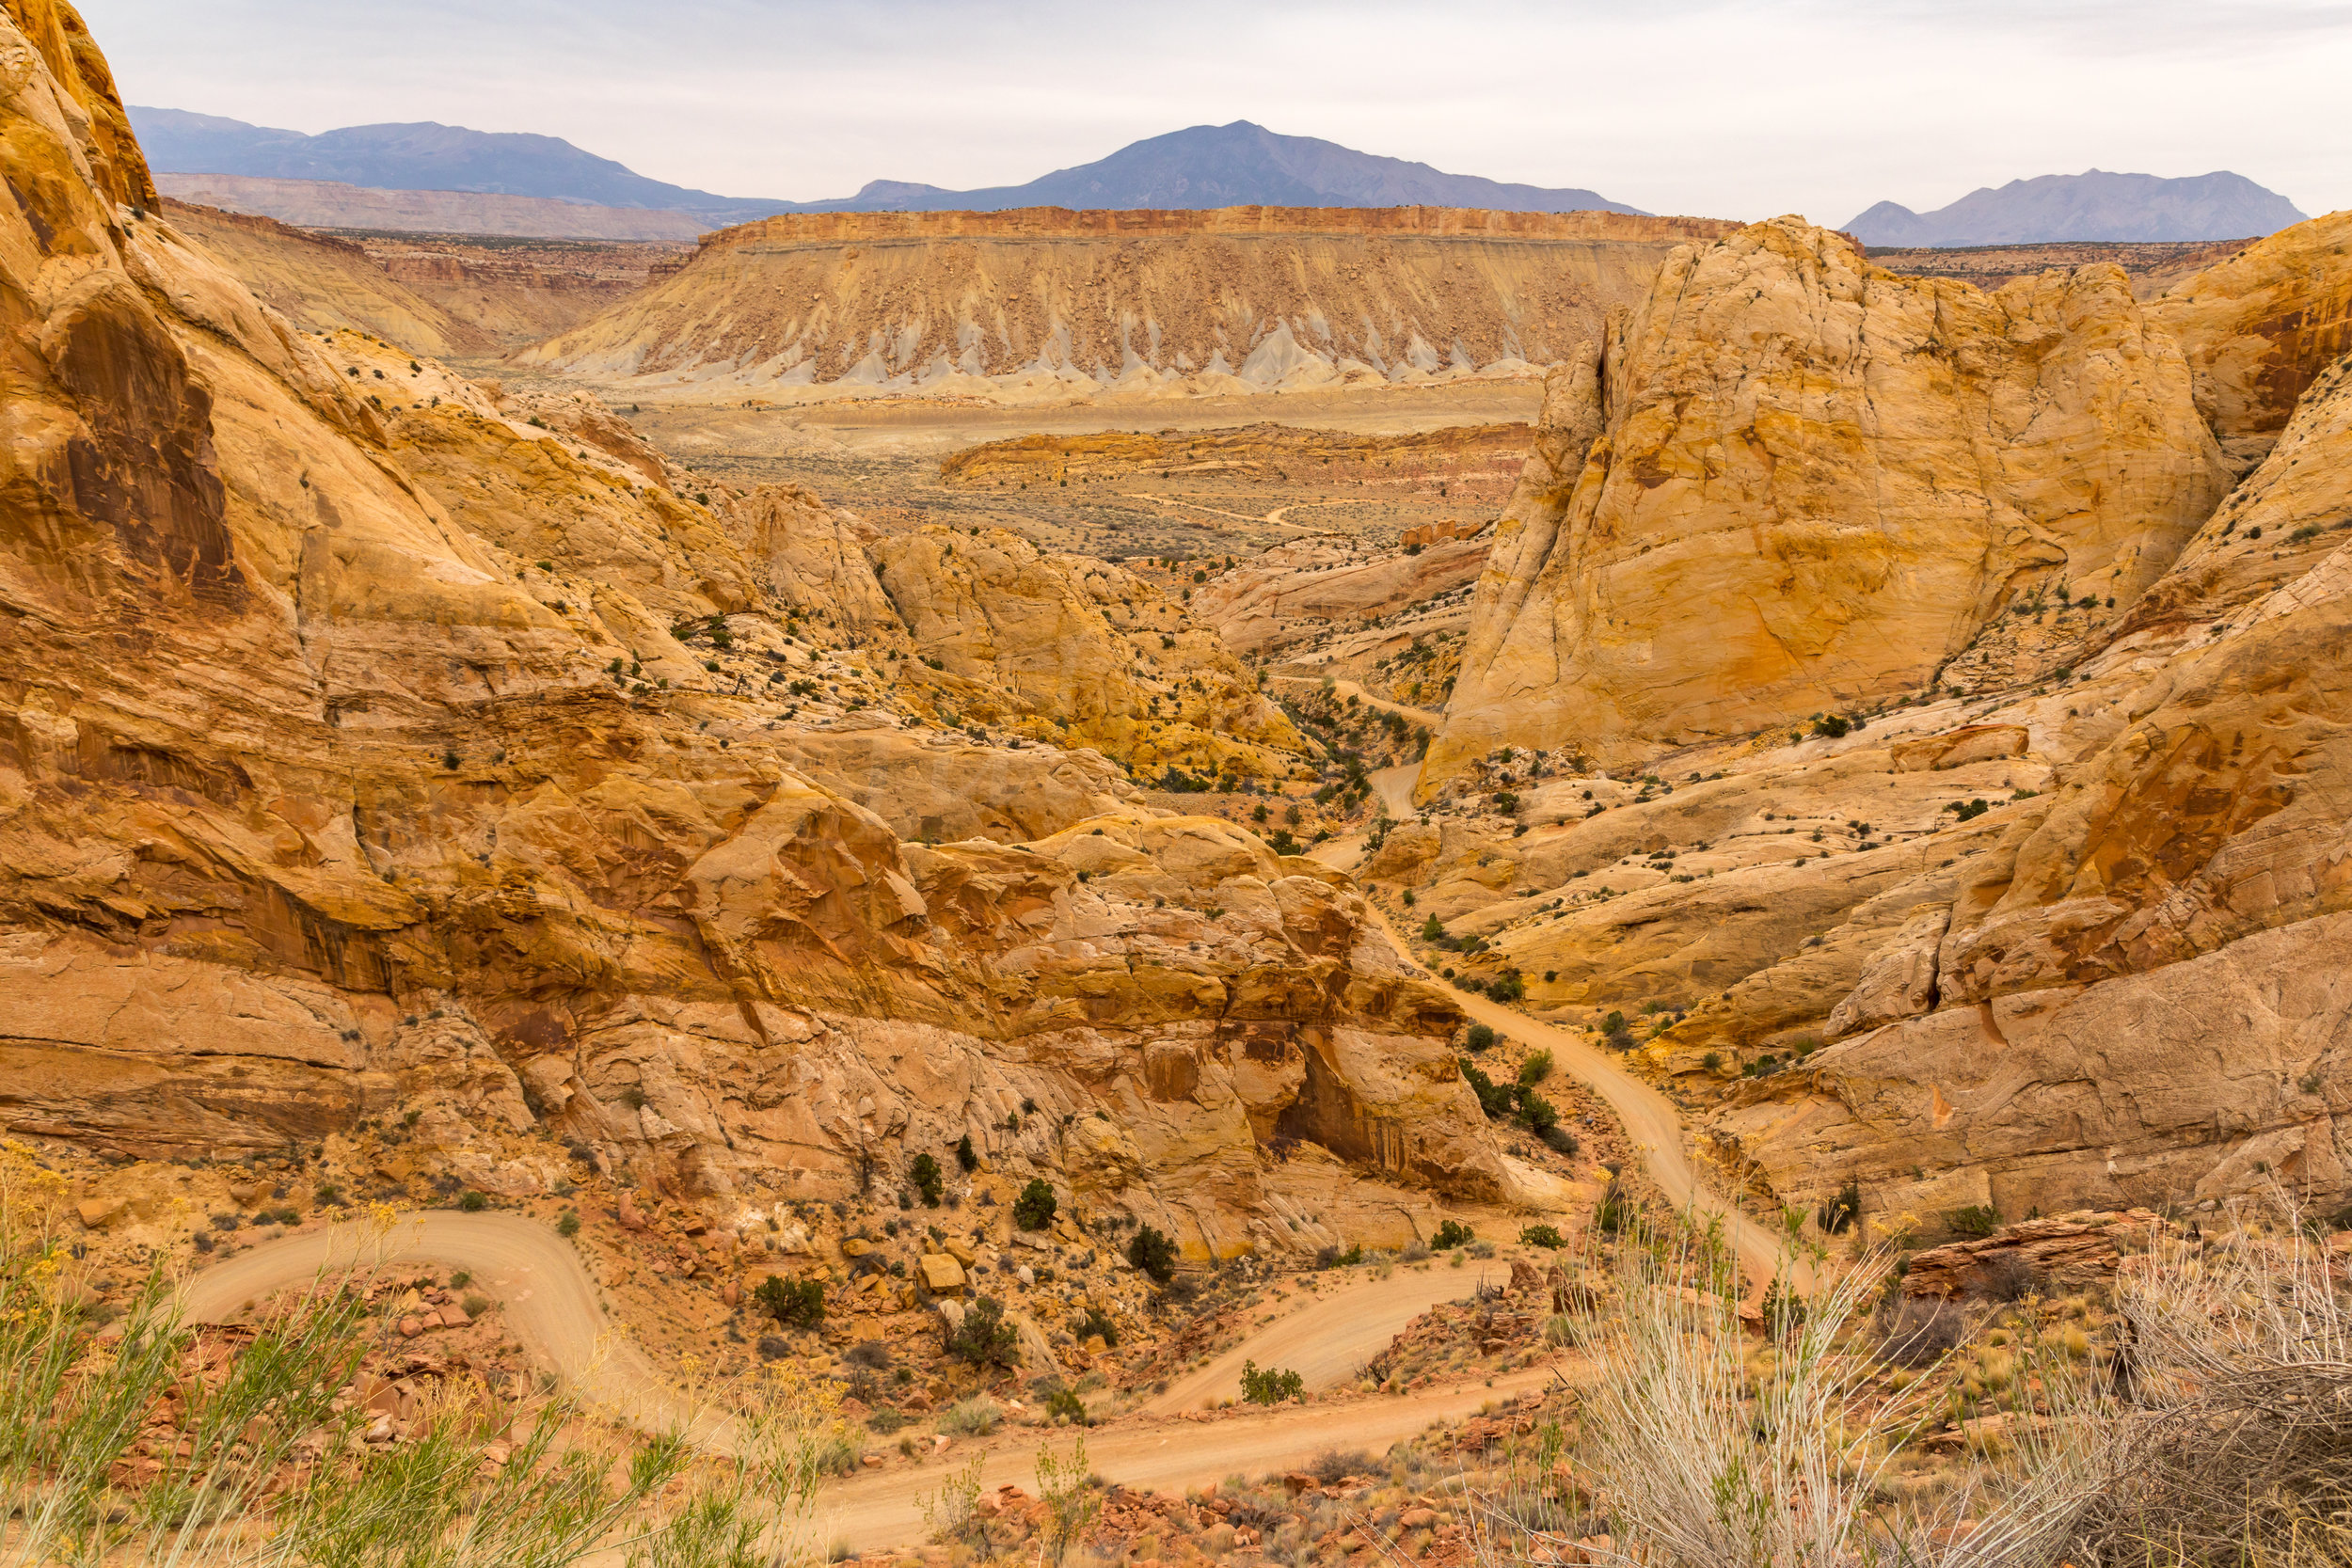 Capitol Reef National Park, Image # 4722